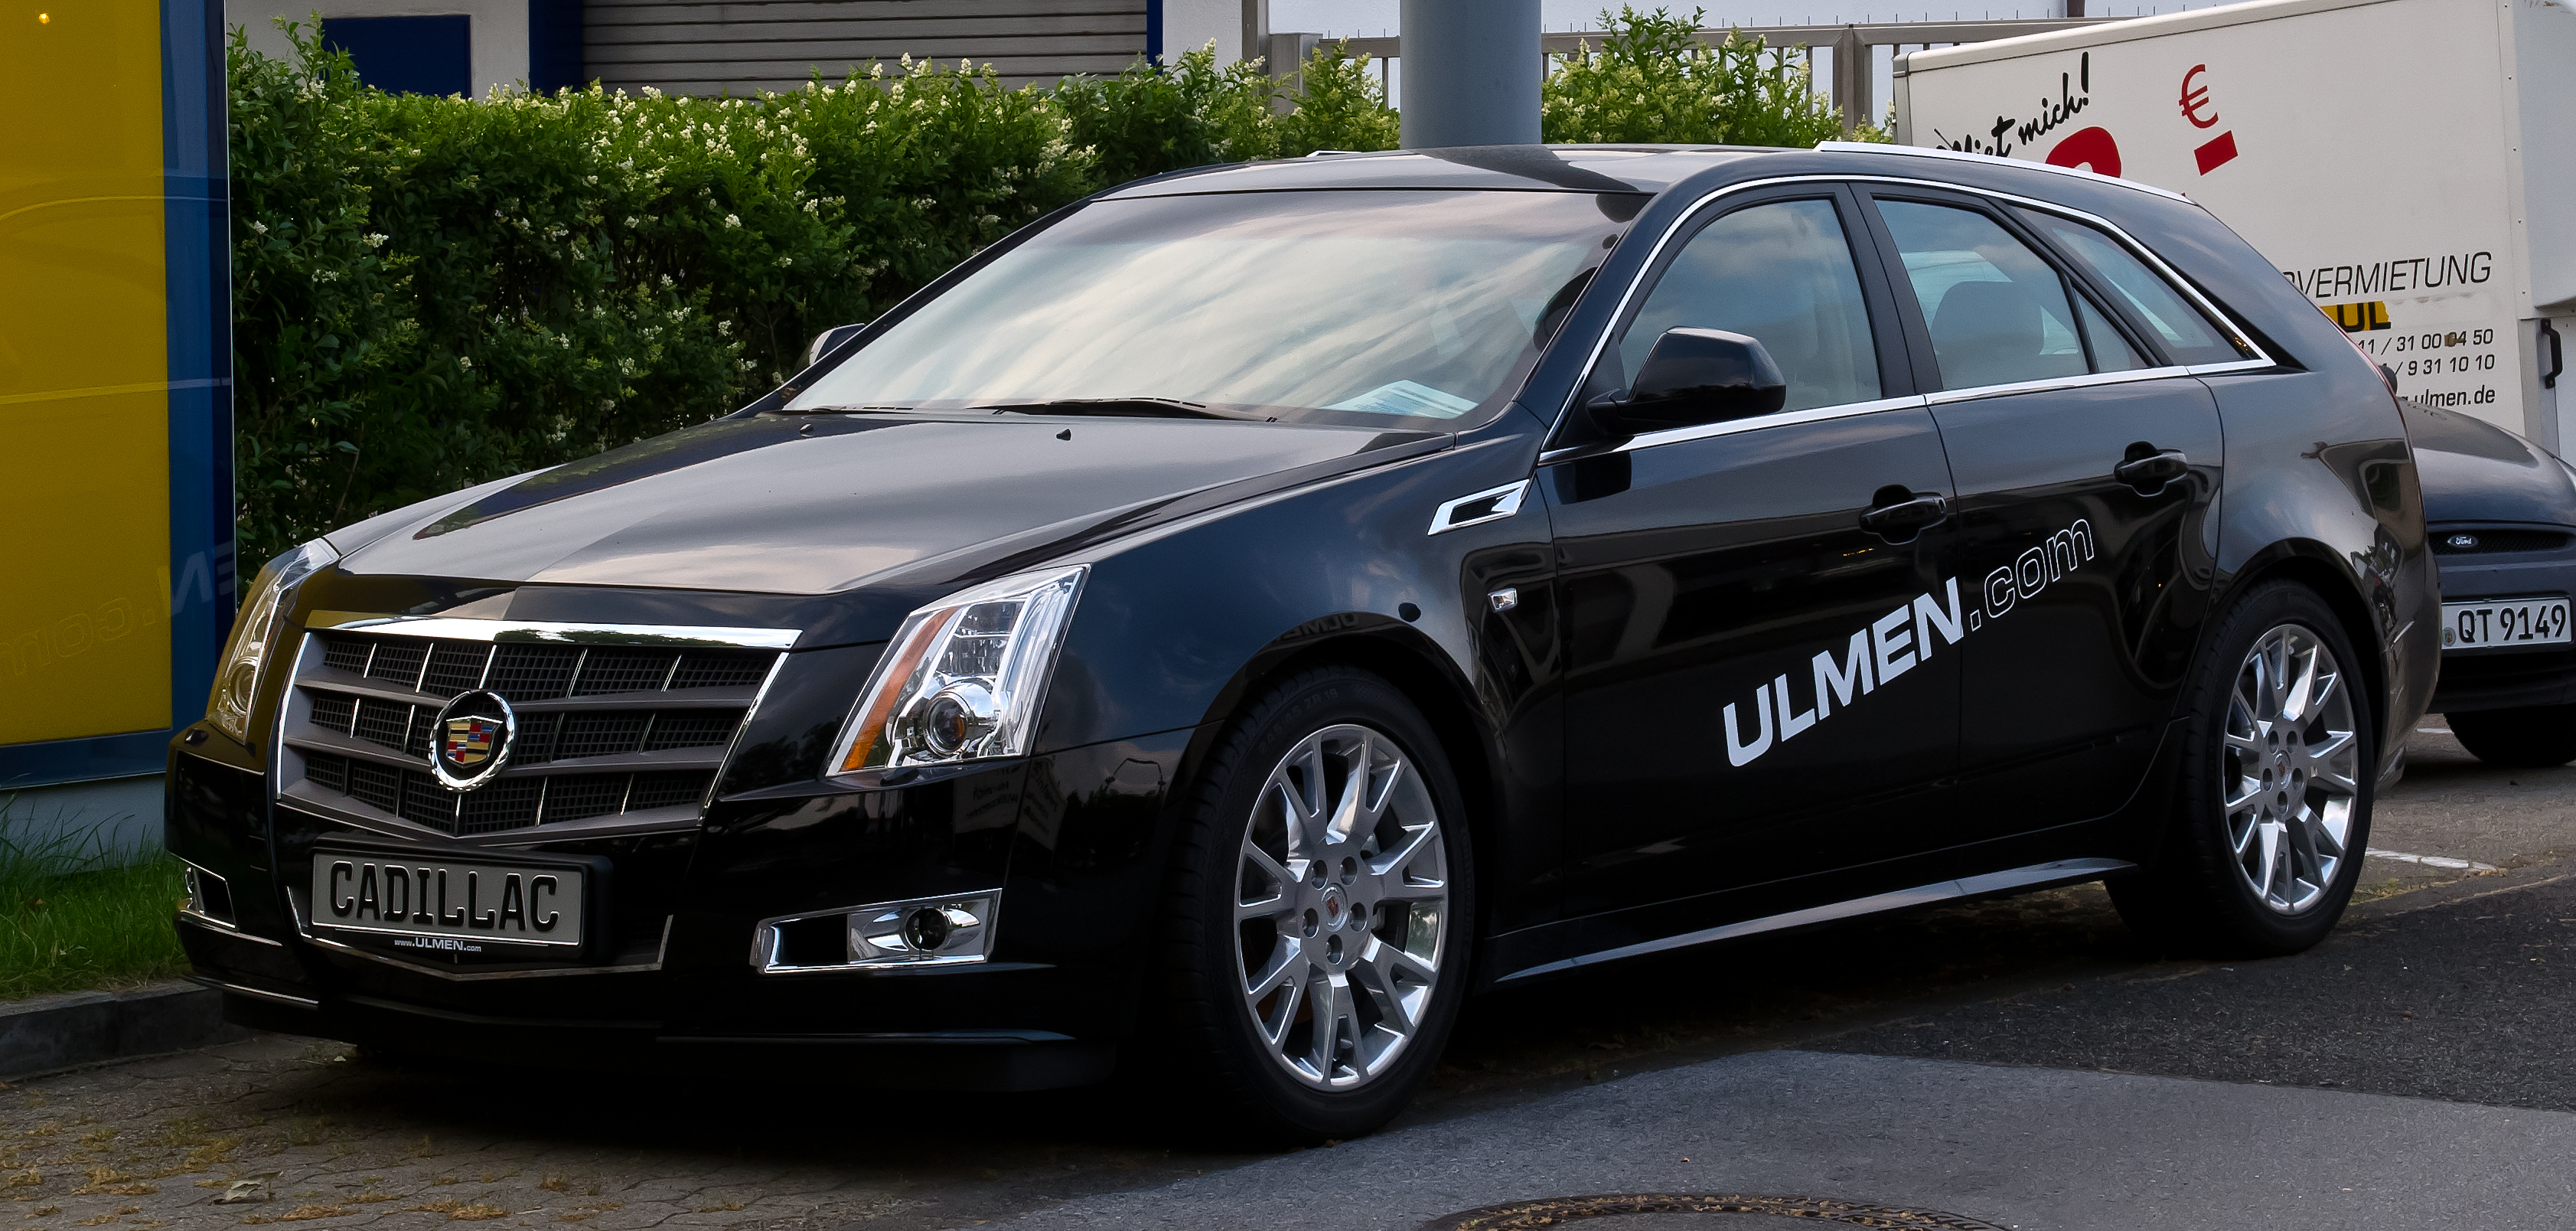 2012 cadillac cts sport wagon pictures information and specs auto. Black Bedroom Furniture Sets. Home Design Ideas